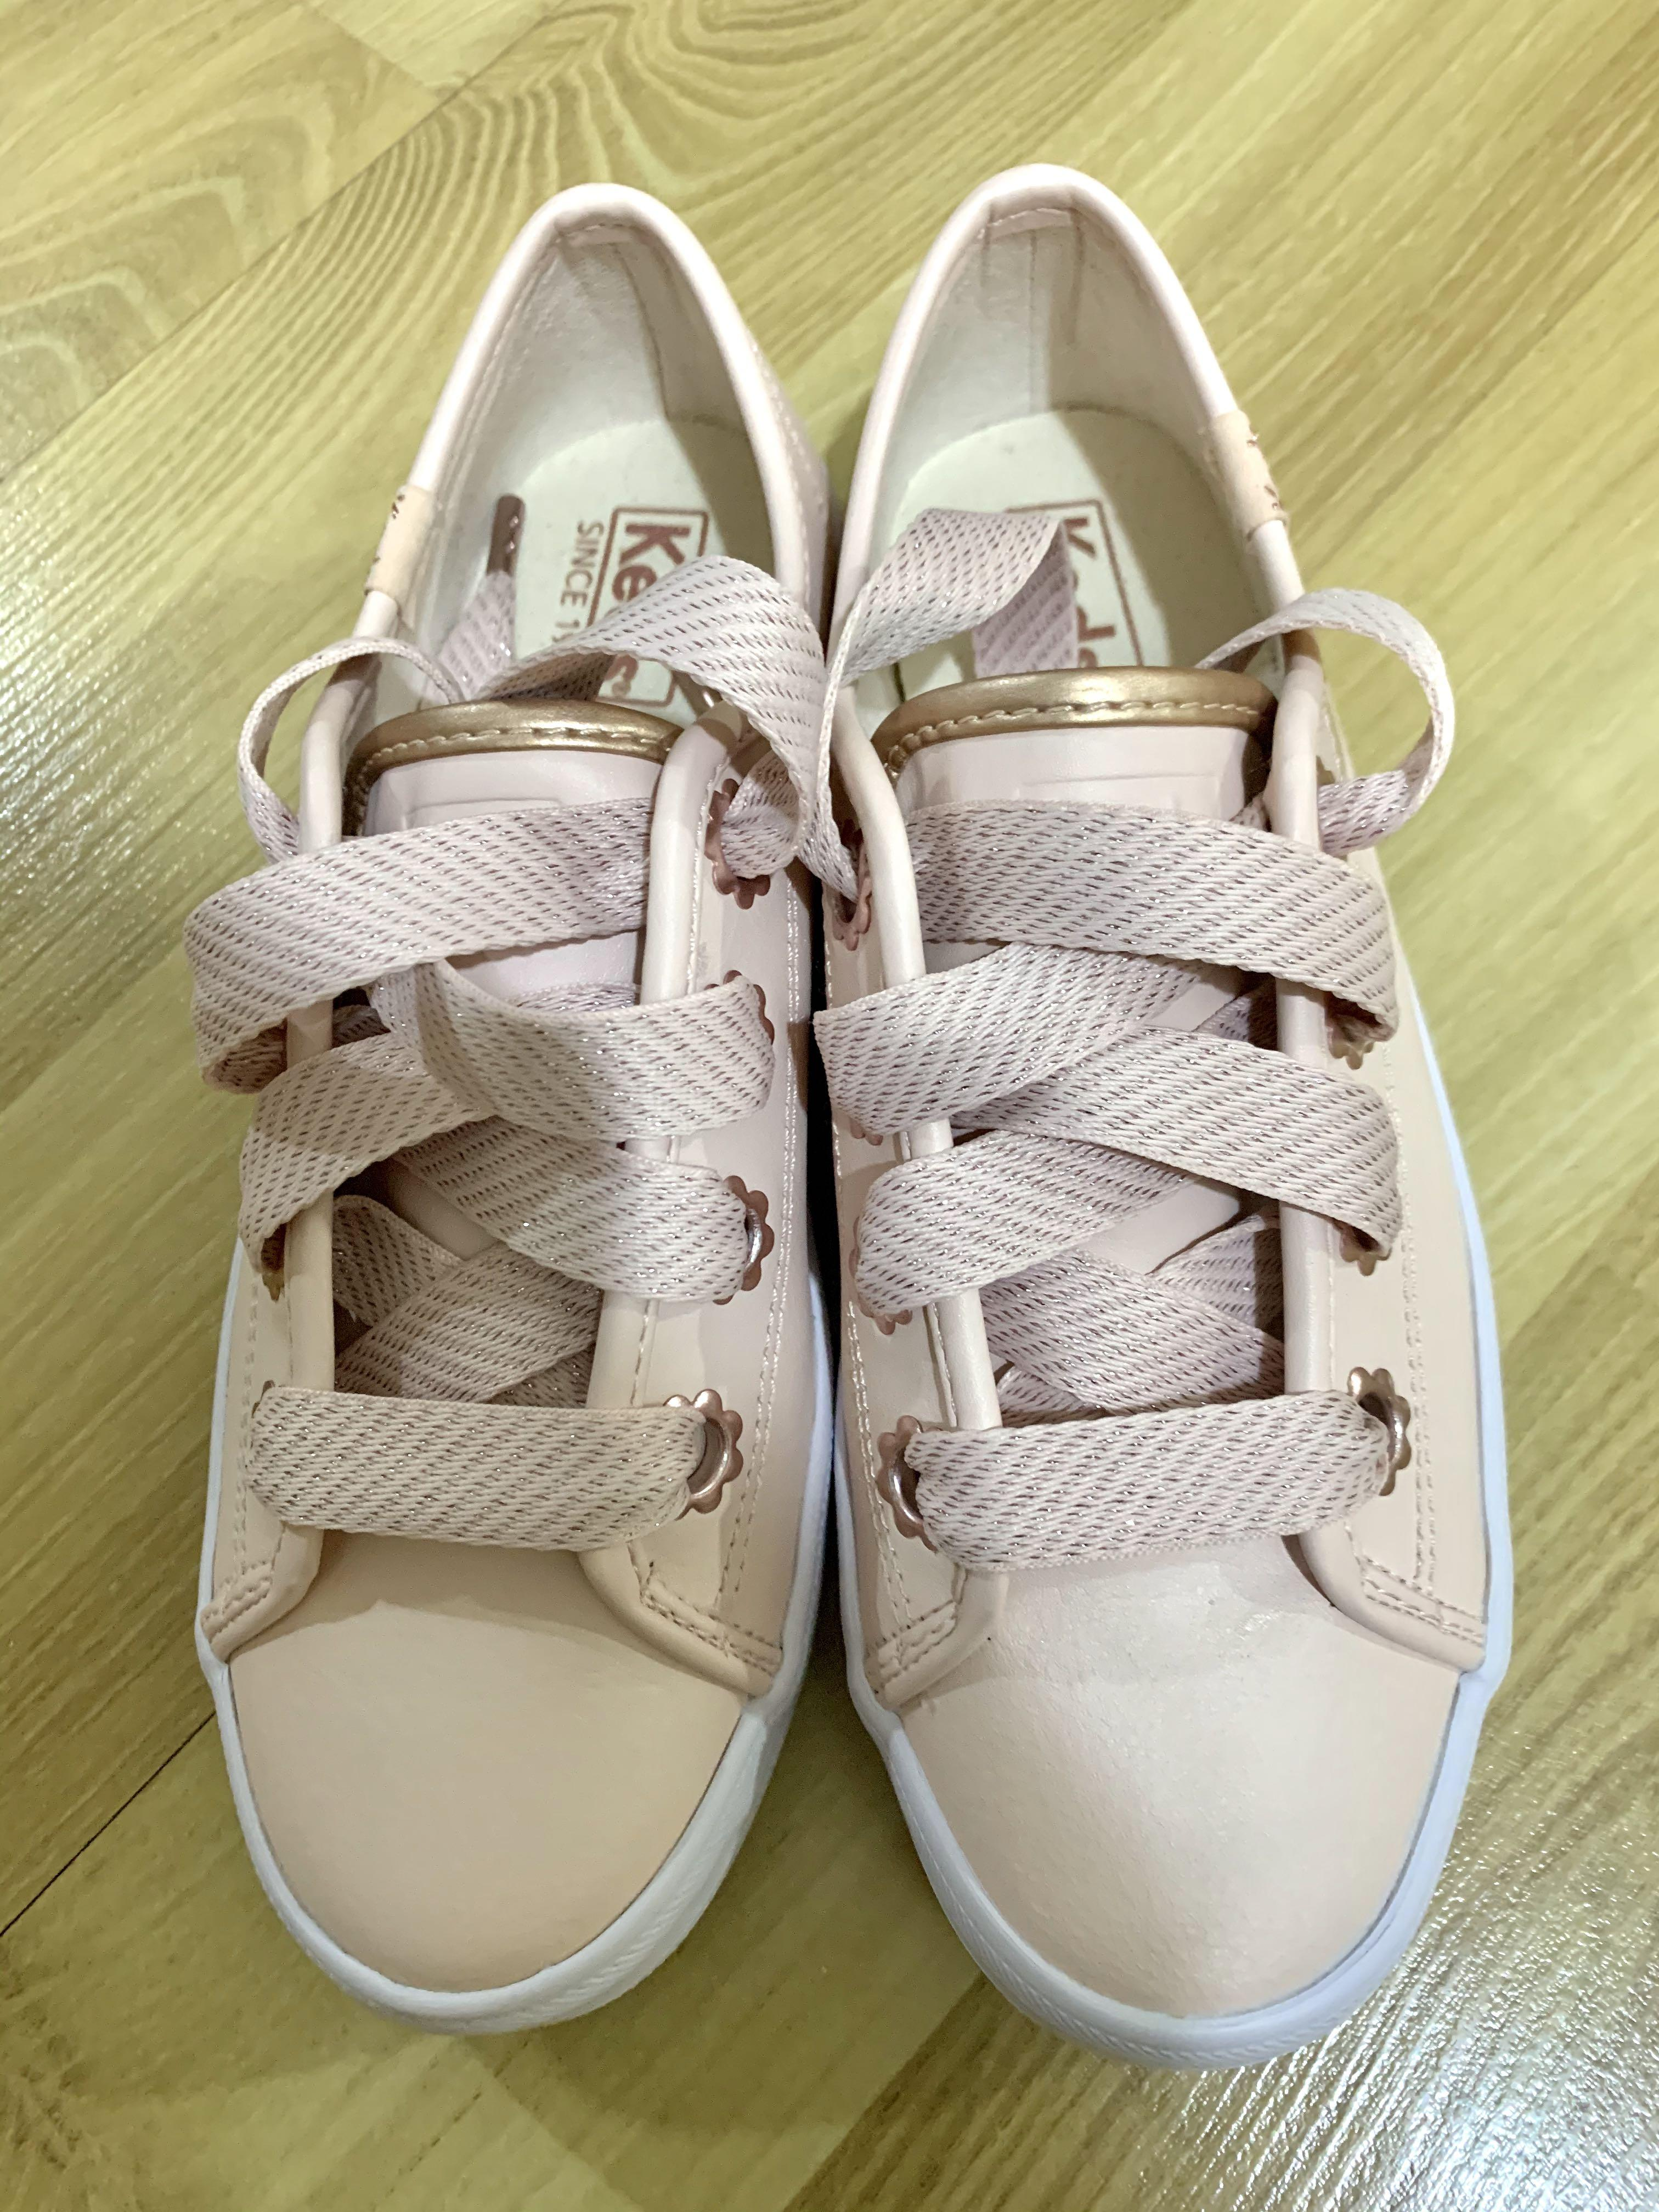 KEDS - Pink leather sneakers, Women's